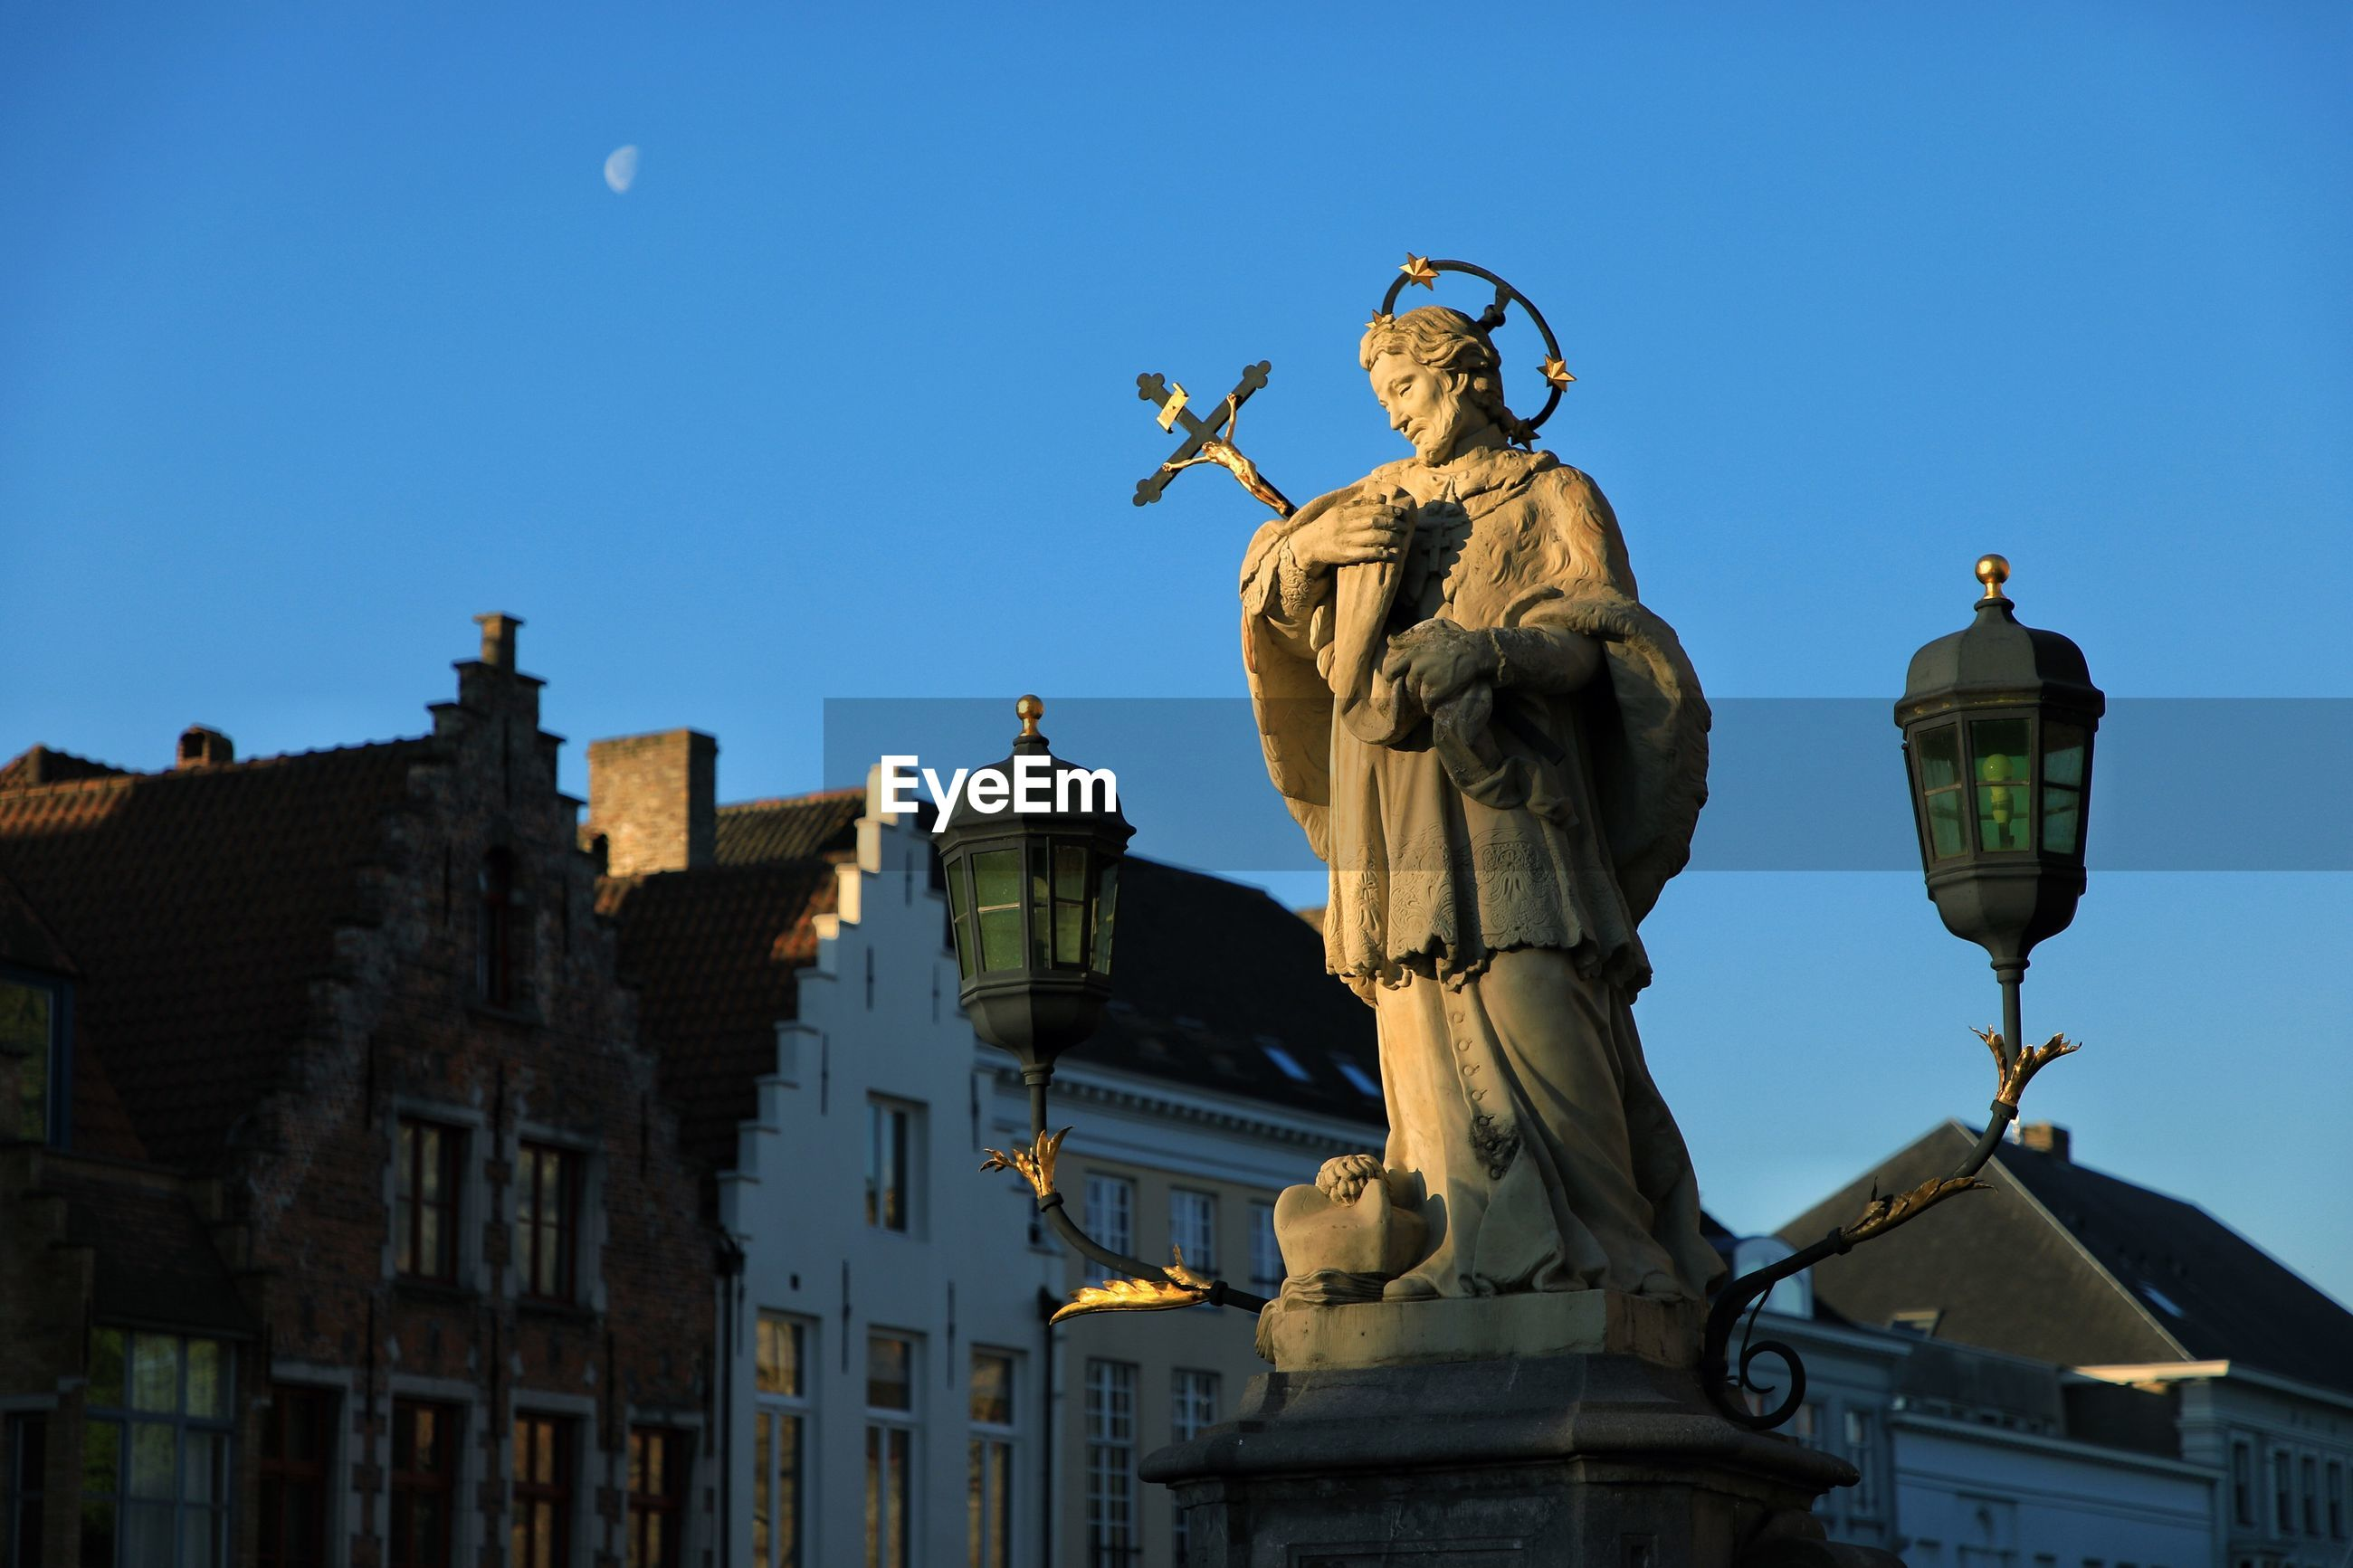 LOW ANGLE VIEW OF ANGEL STATUE AGAINST BUILDINGS